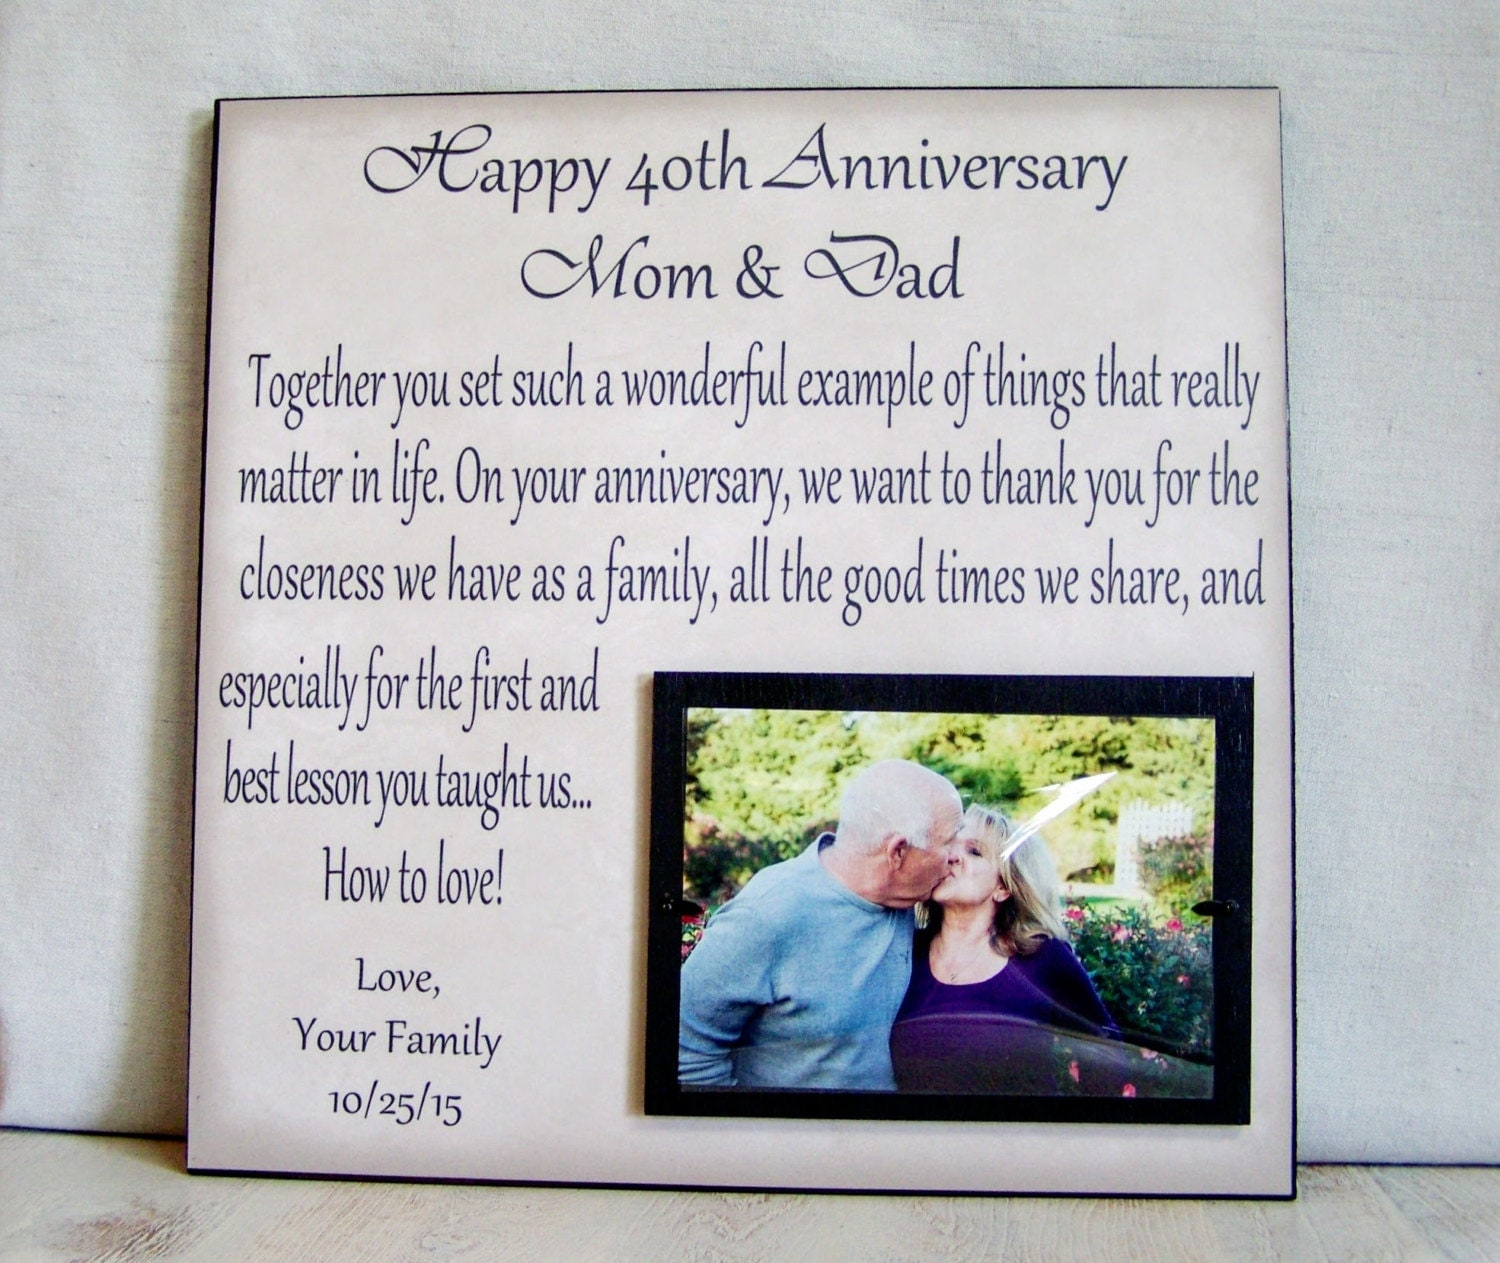 Creative Wedding Anniversary Ideas For Parents : Ideas 30th Wedding Anniversary Gift For Parents anniversary picture ...